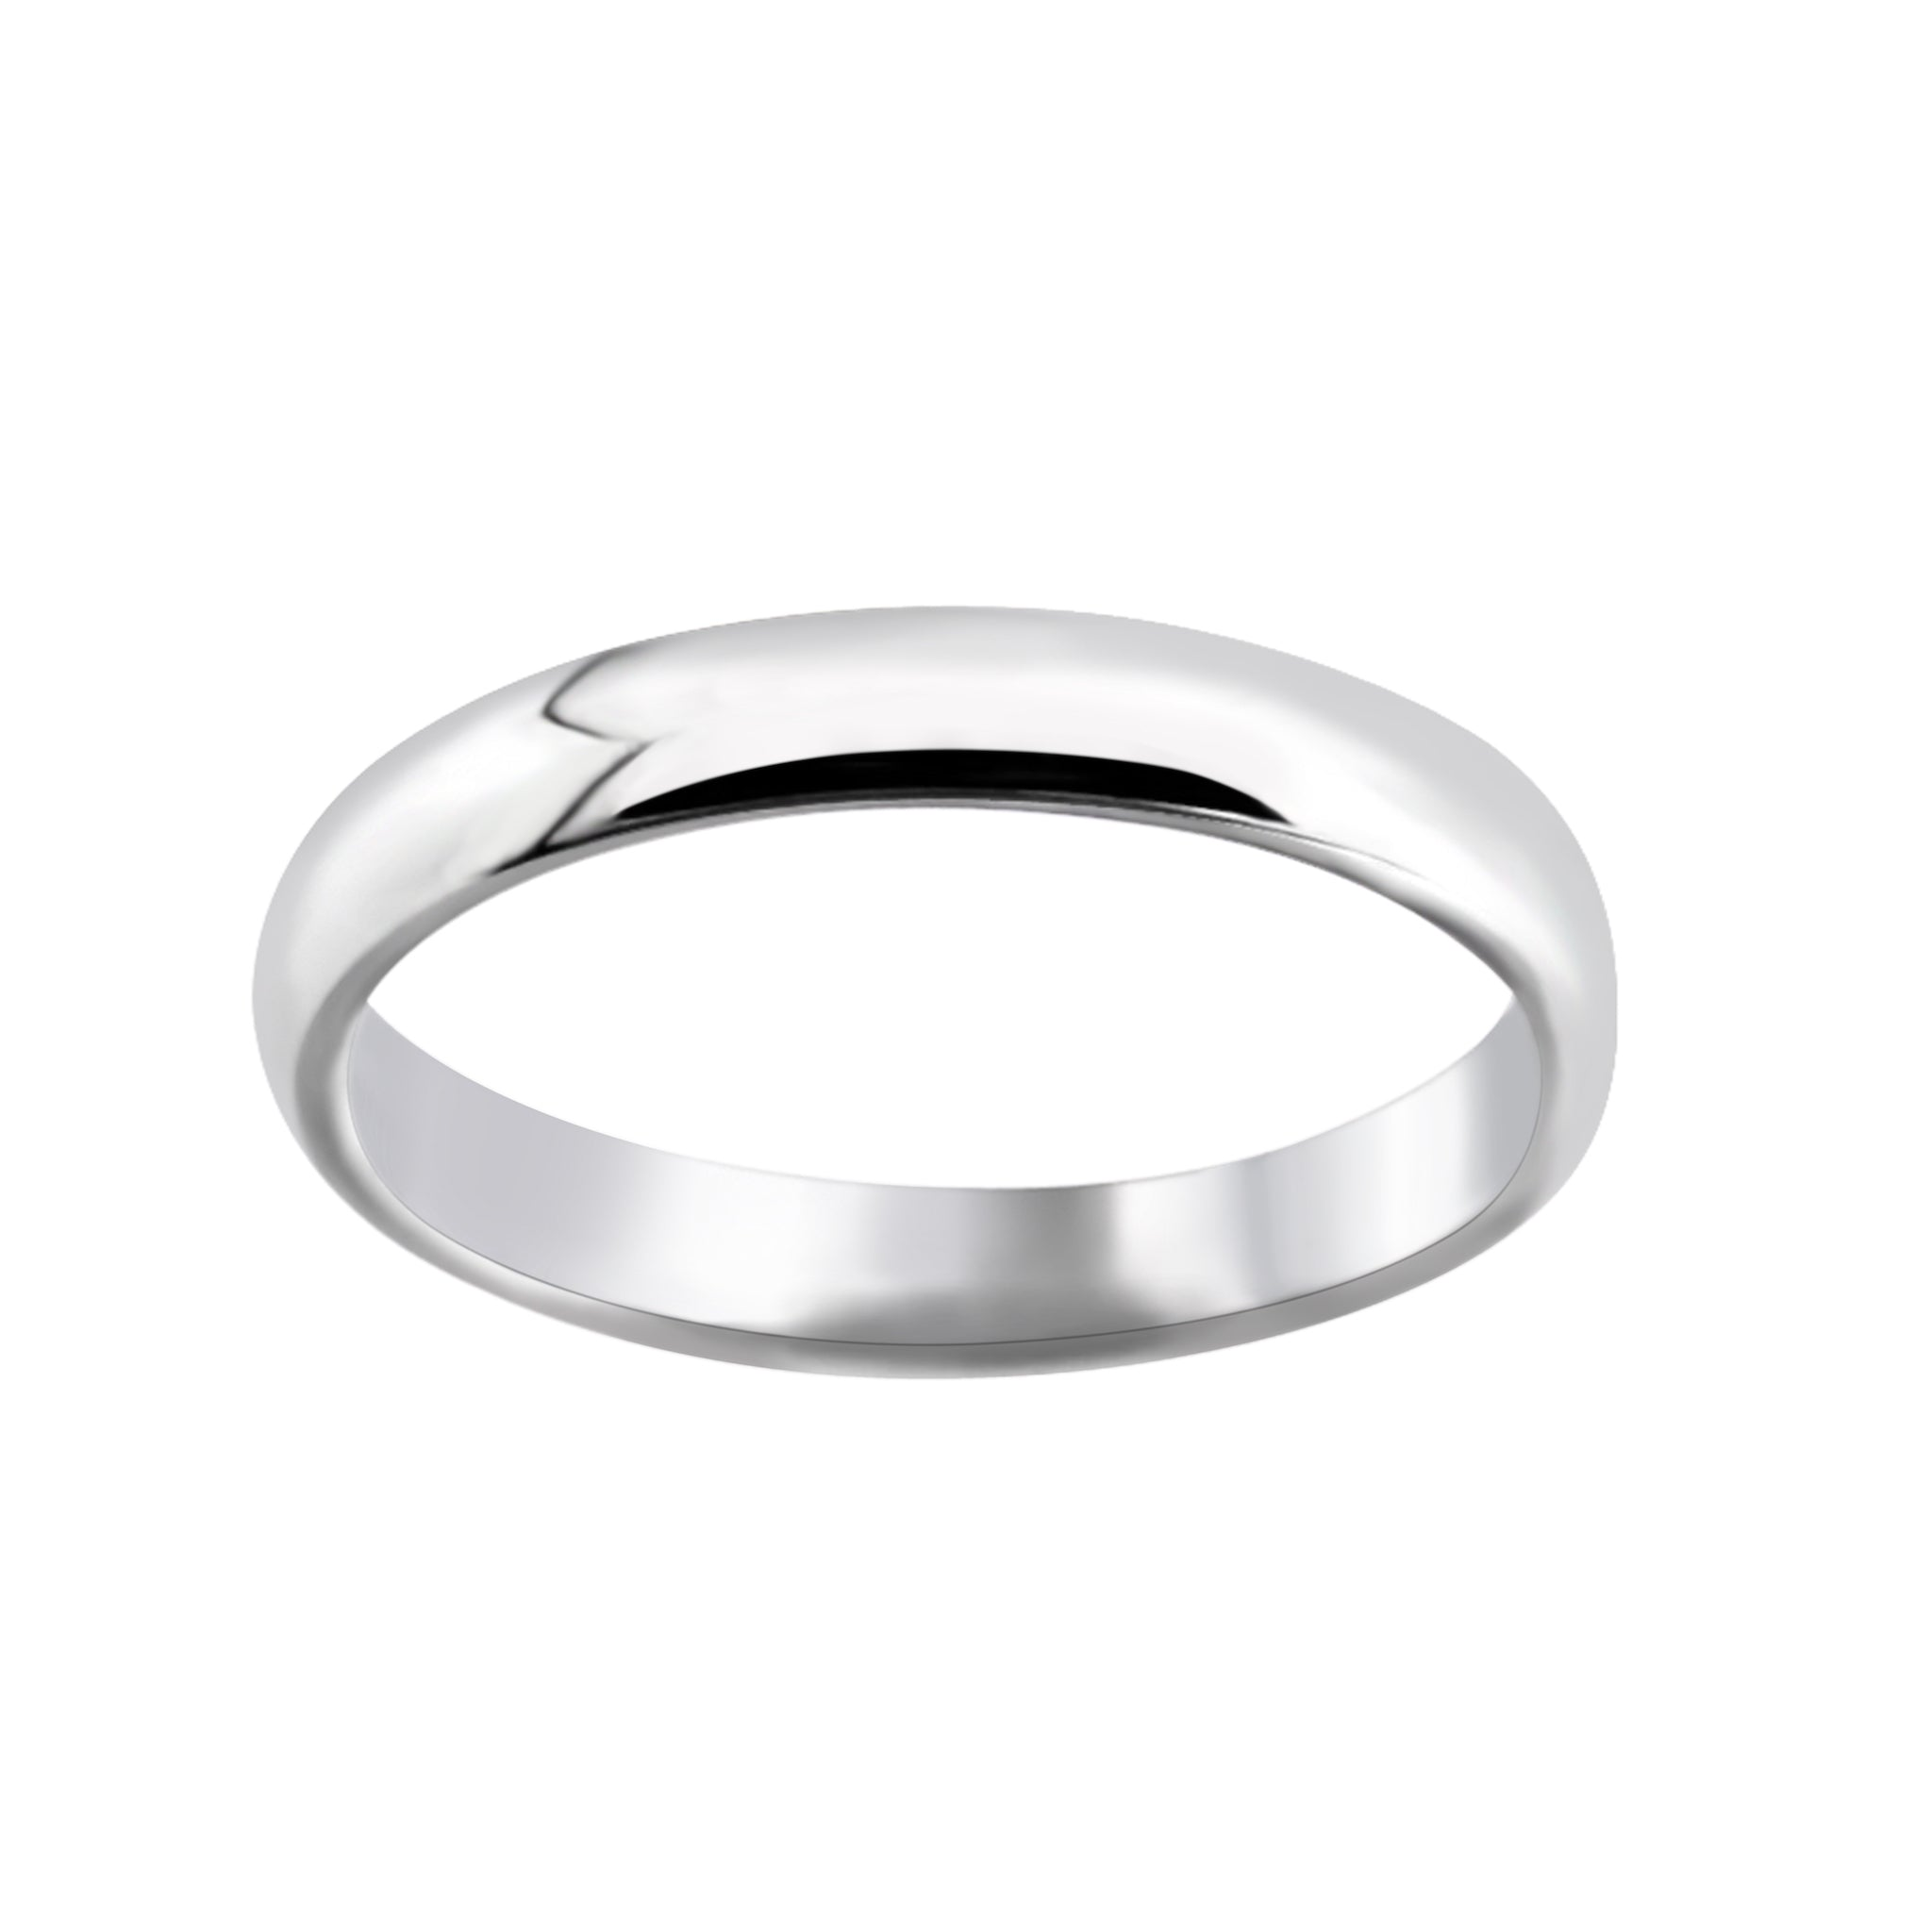 3mm Comfort Fit Wedding Band